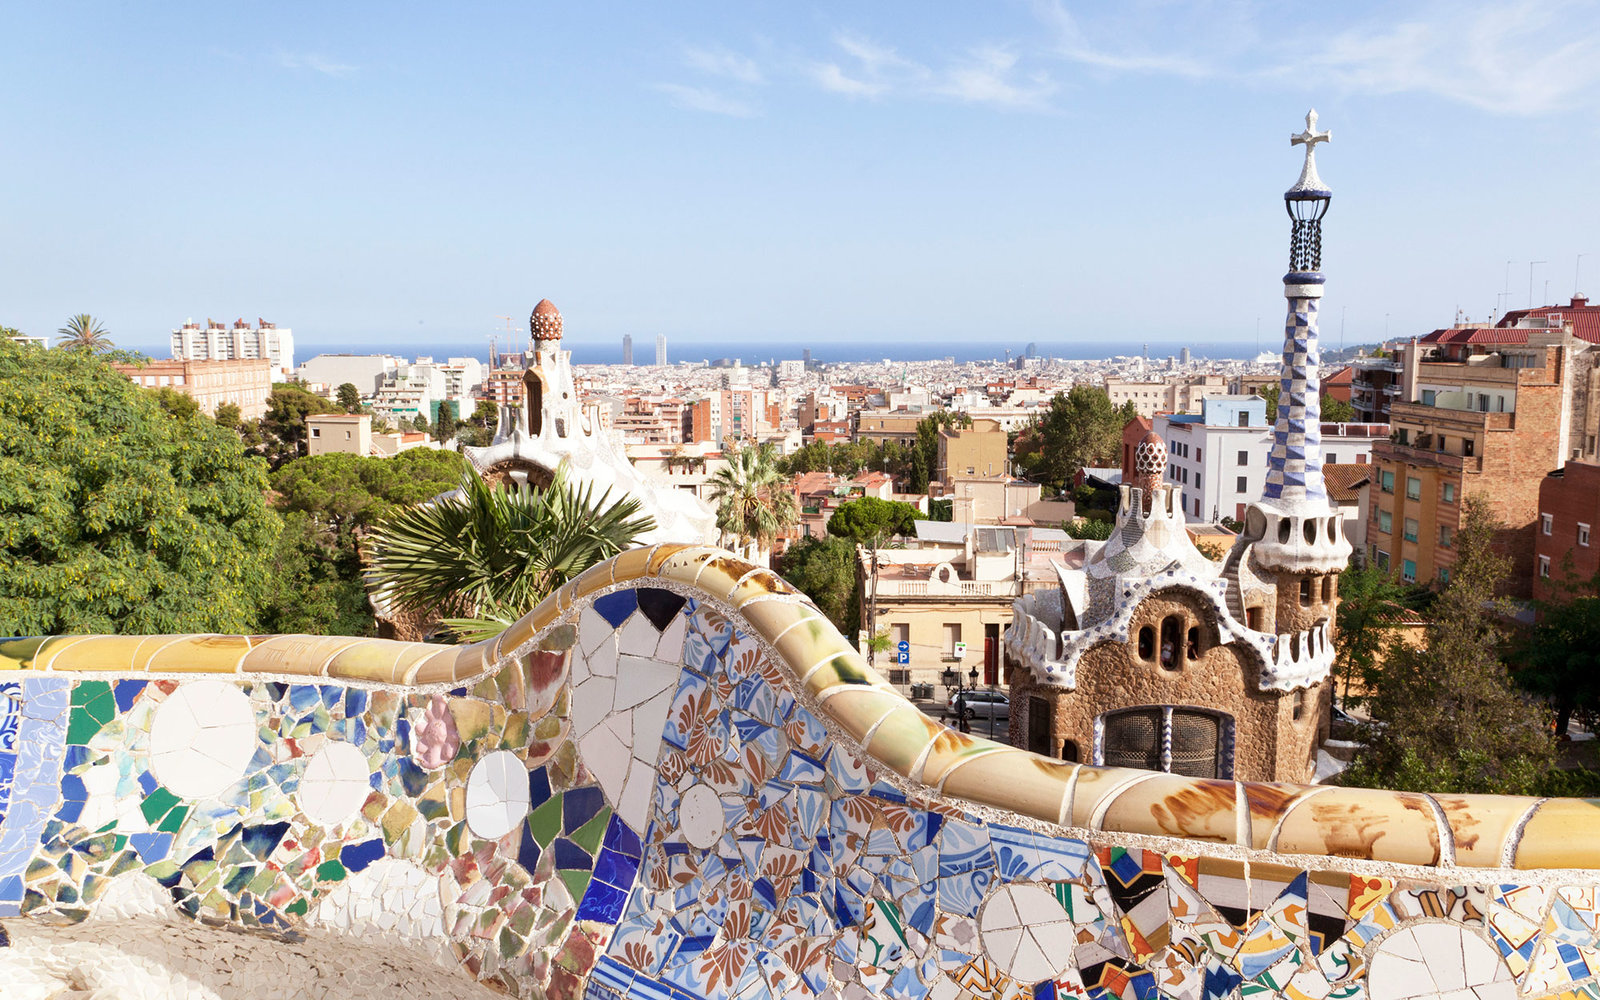 Park Guell garden in Barcelona, Spain